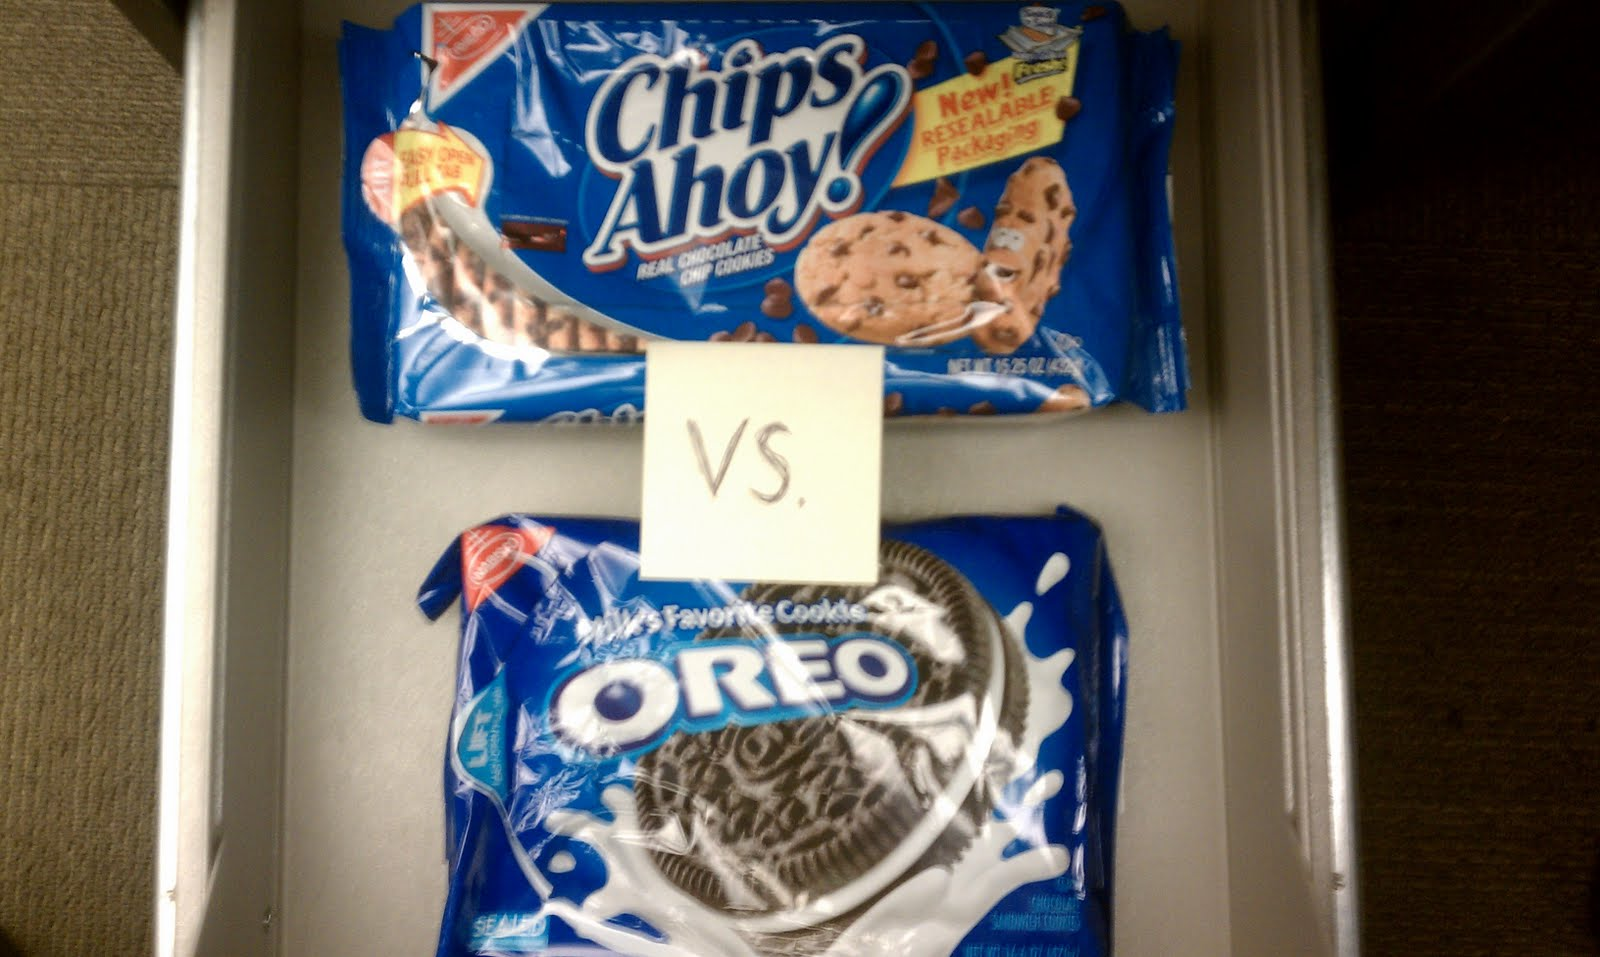 oreos v s chips ahoy 22042008 oreo vs chips ahoy  we would set out an equal number of oreos and chips ahoy on plates in the central area of our  woody's chalkboard josh@.